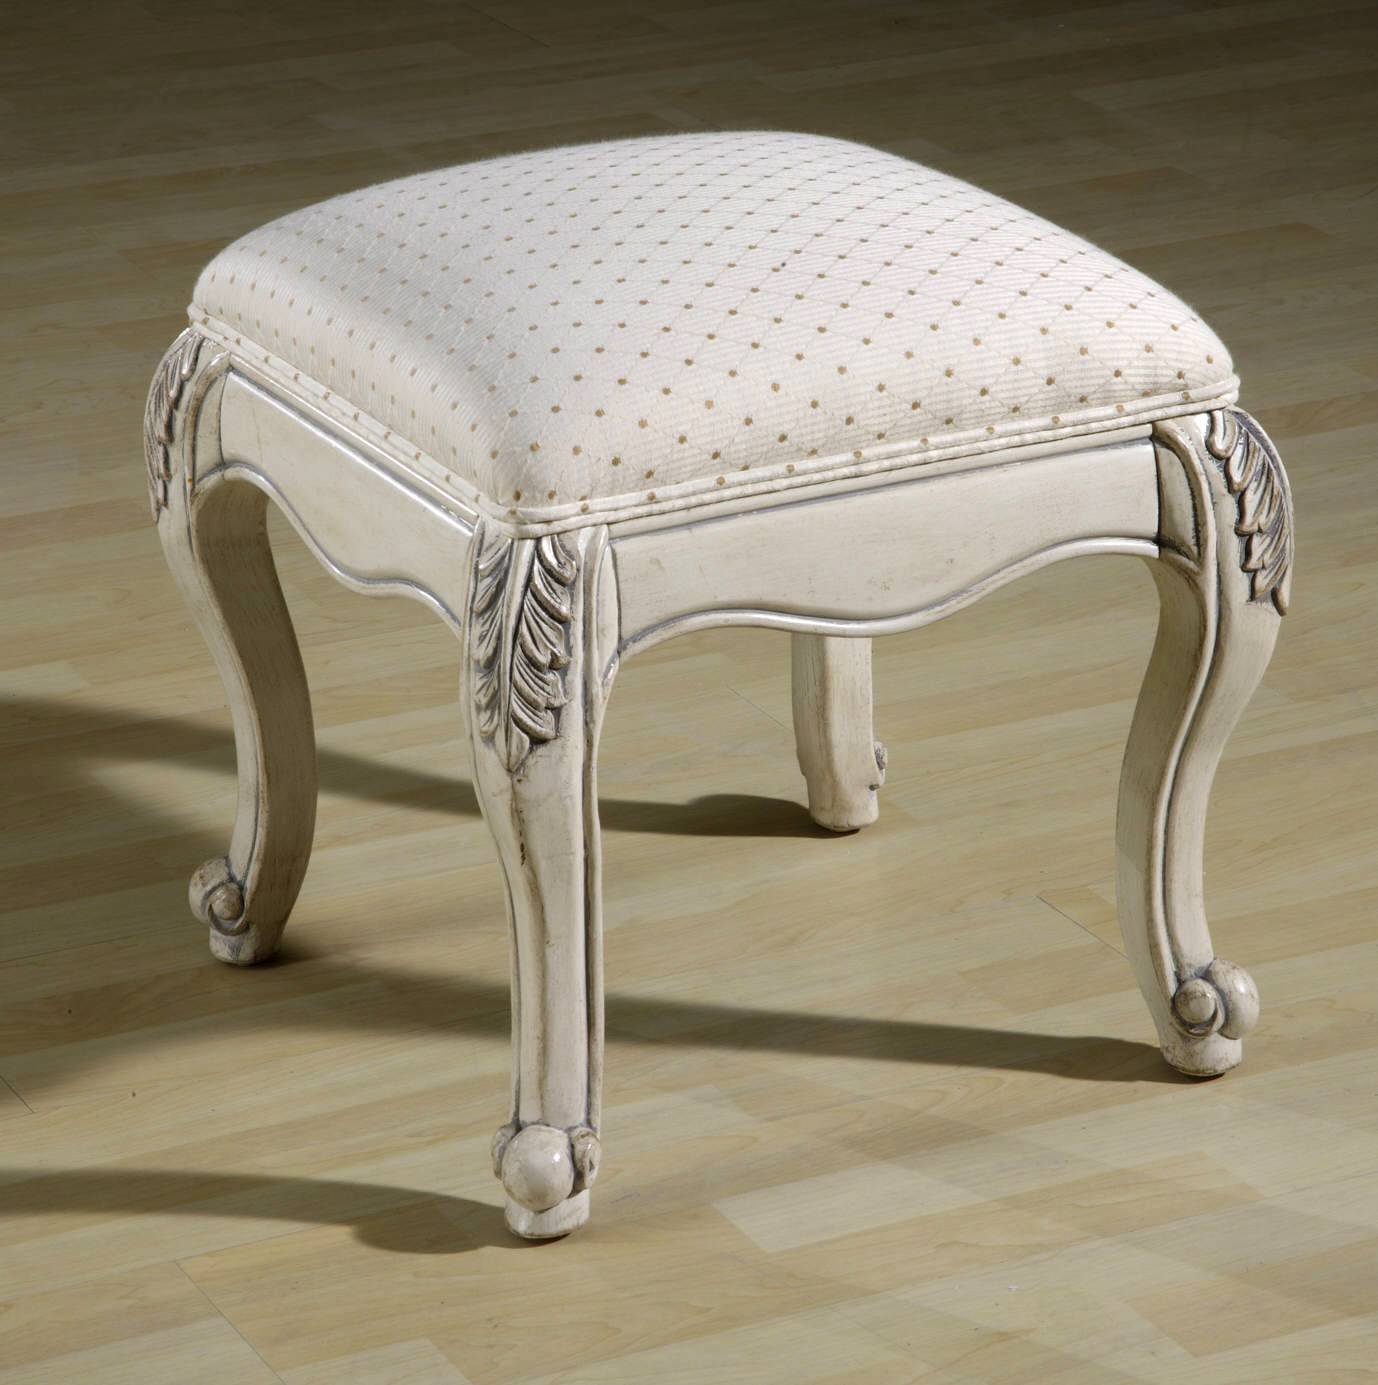 Vanity Stools Or Benches More Designs Of Vanity Bench Seat For Bedroom Vanity